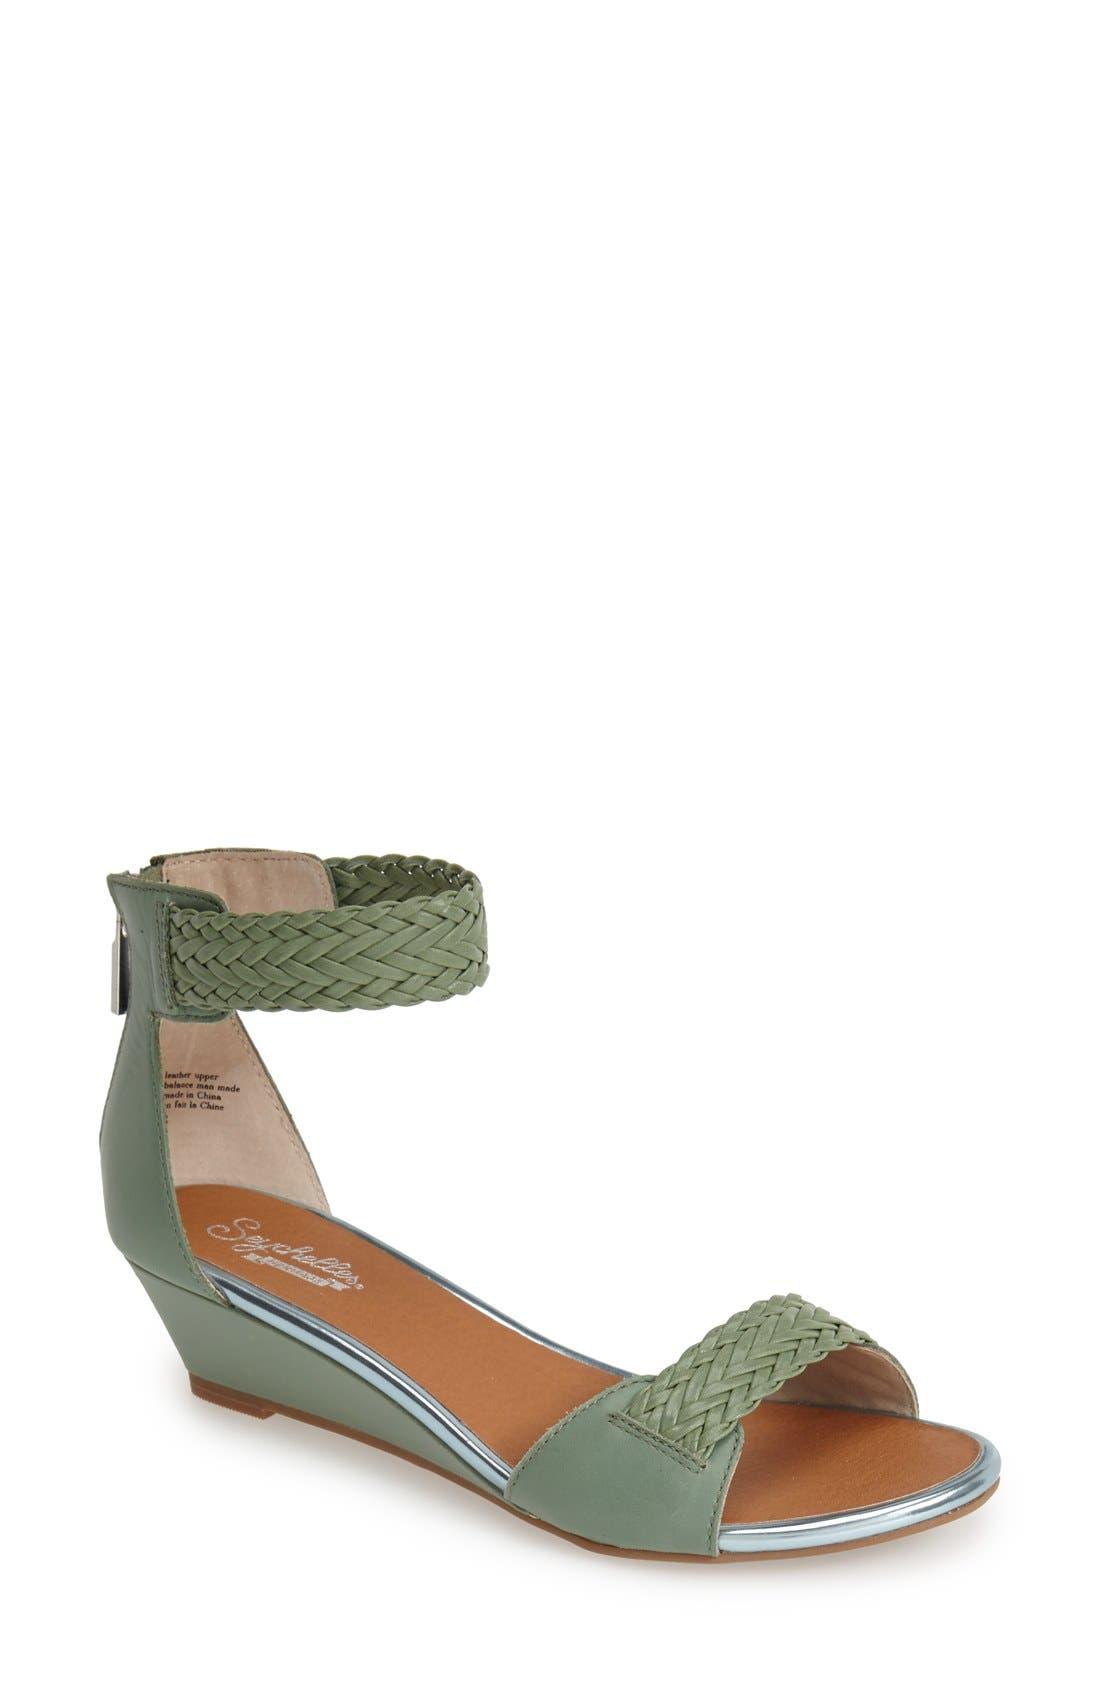 Main Image - Seychelles 'Spelling Bee' Leather Ankle Cuff Wedge Sandal (Women)